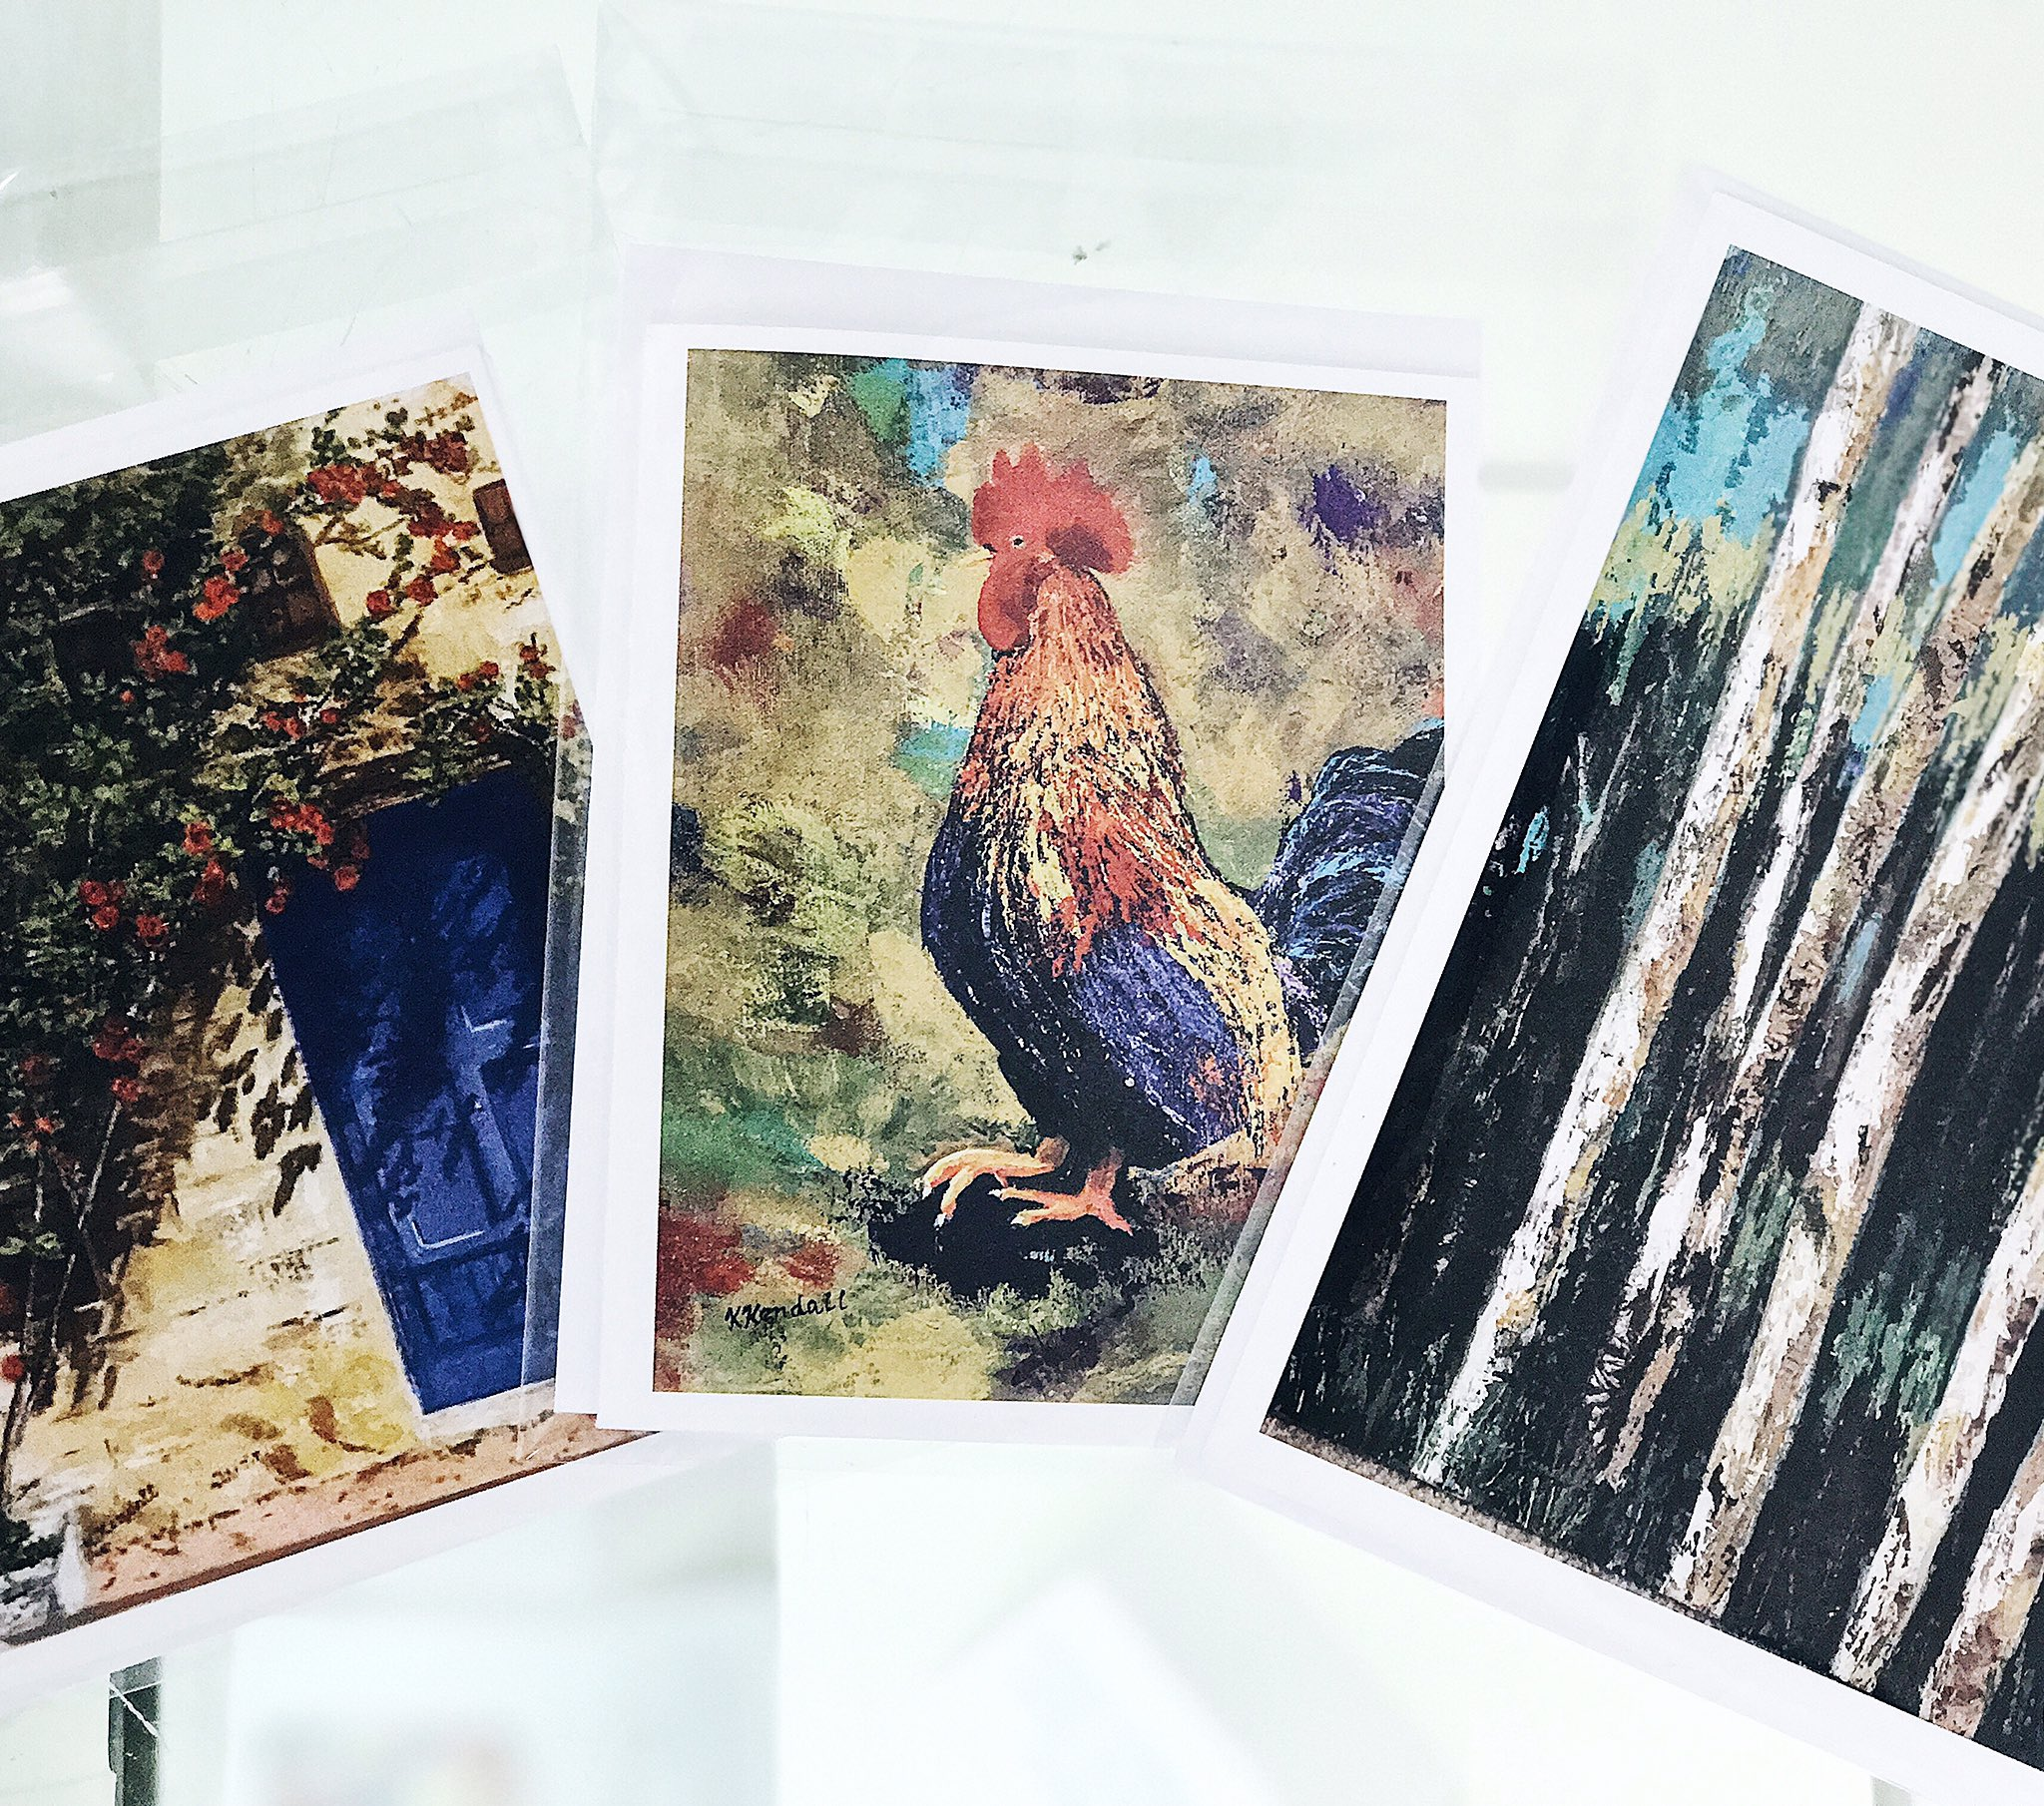 Check out Kim Kendall's custom greeting cards in our gift shop. Perfect for any occasion! Only $2 each! https://t.co/Etv13Q8HMt